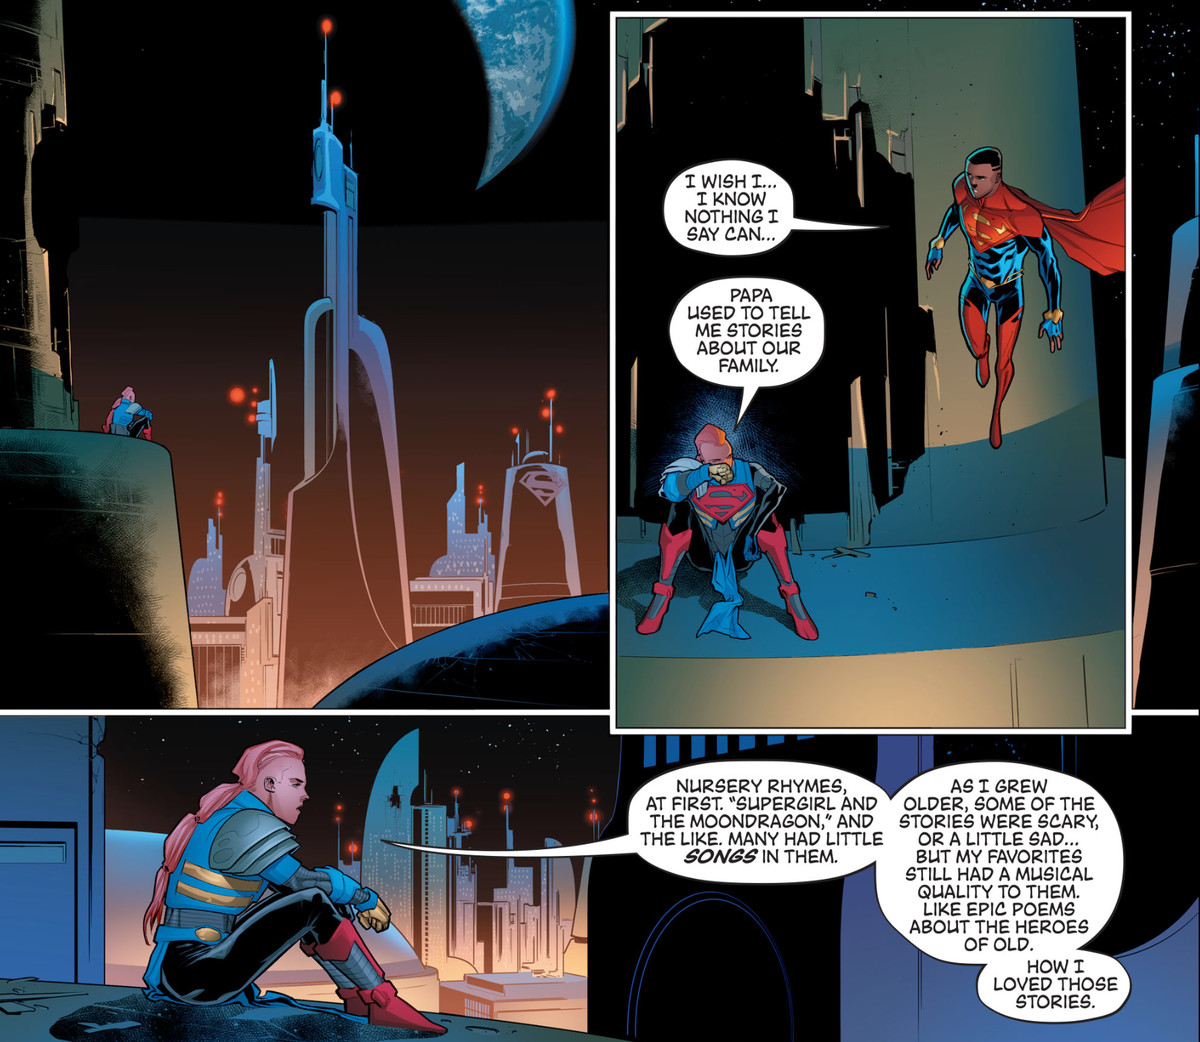 A member of the far future House of El, descendants of Superman, describes how her father used to tell her fairy tales about their family in Future State: Superman: House of El, DC Comics (2021).